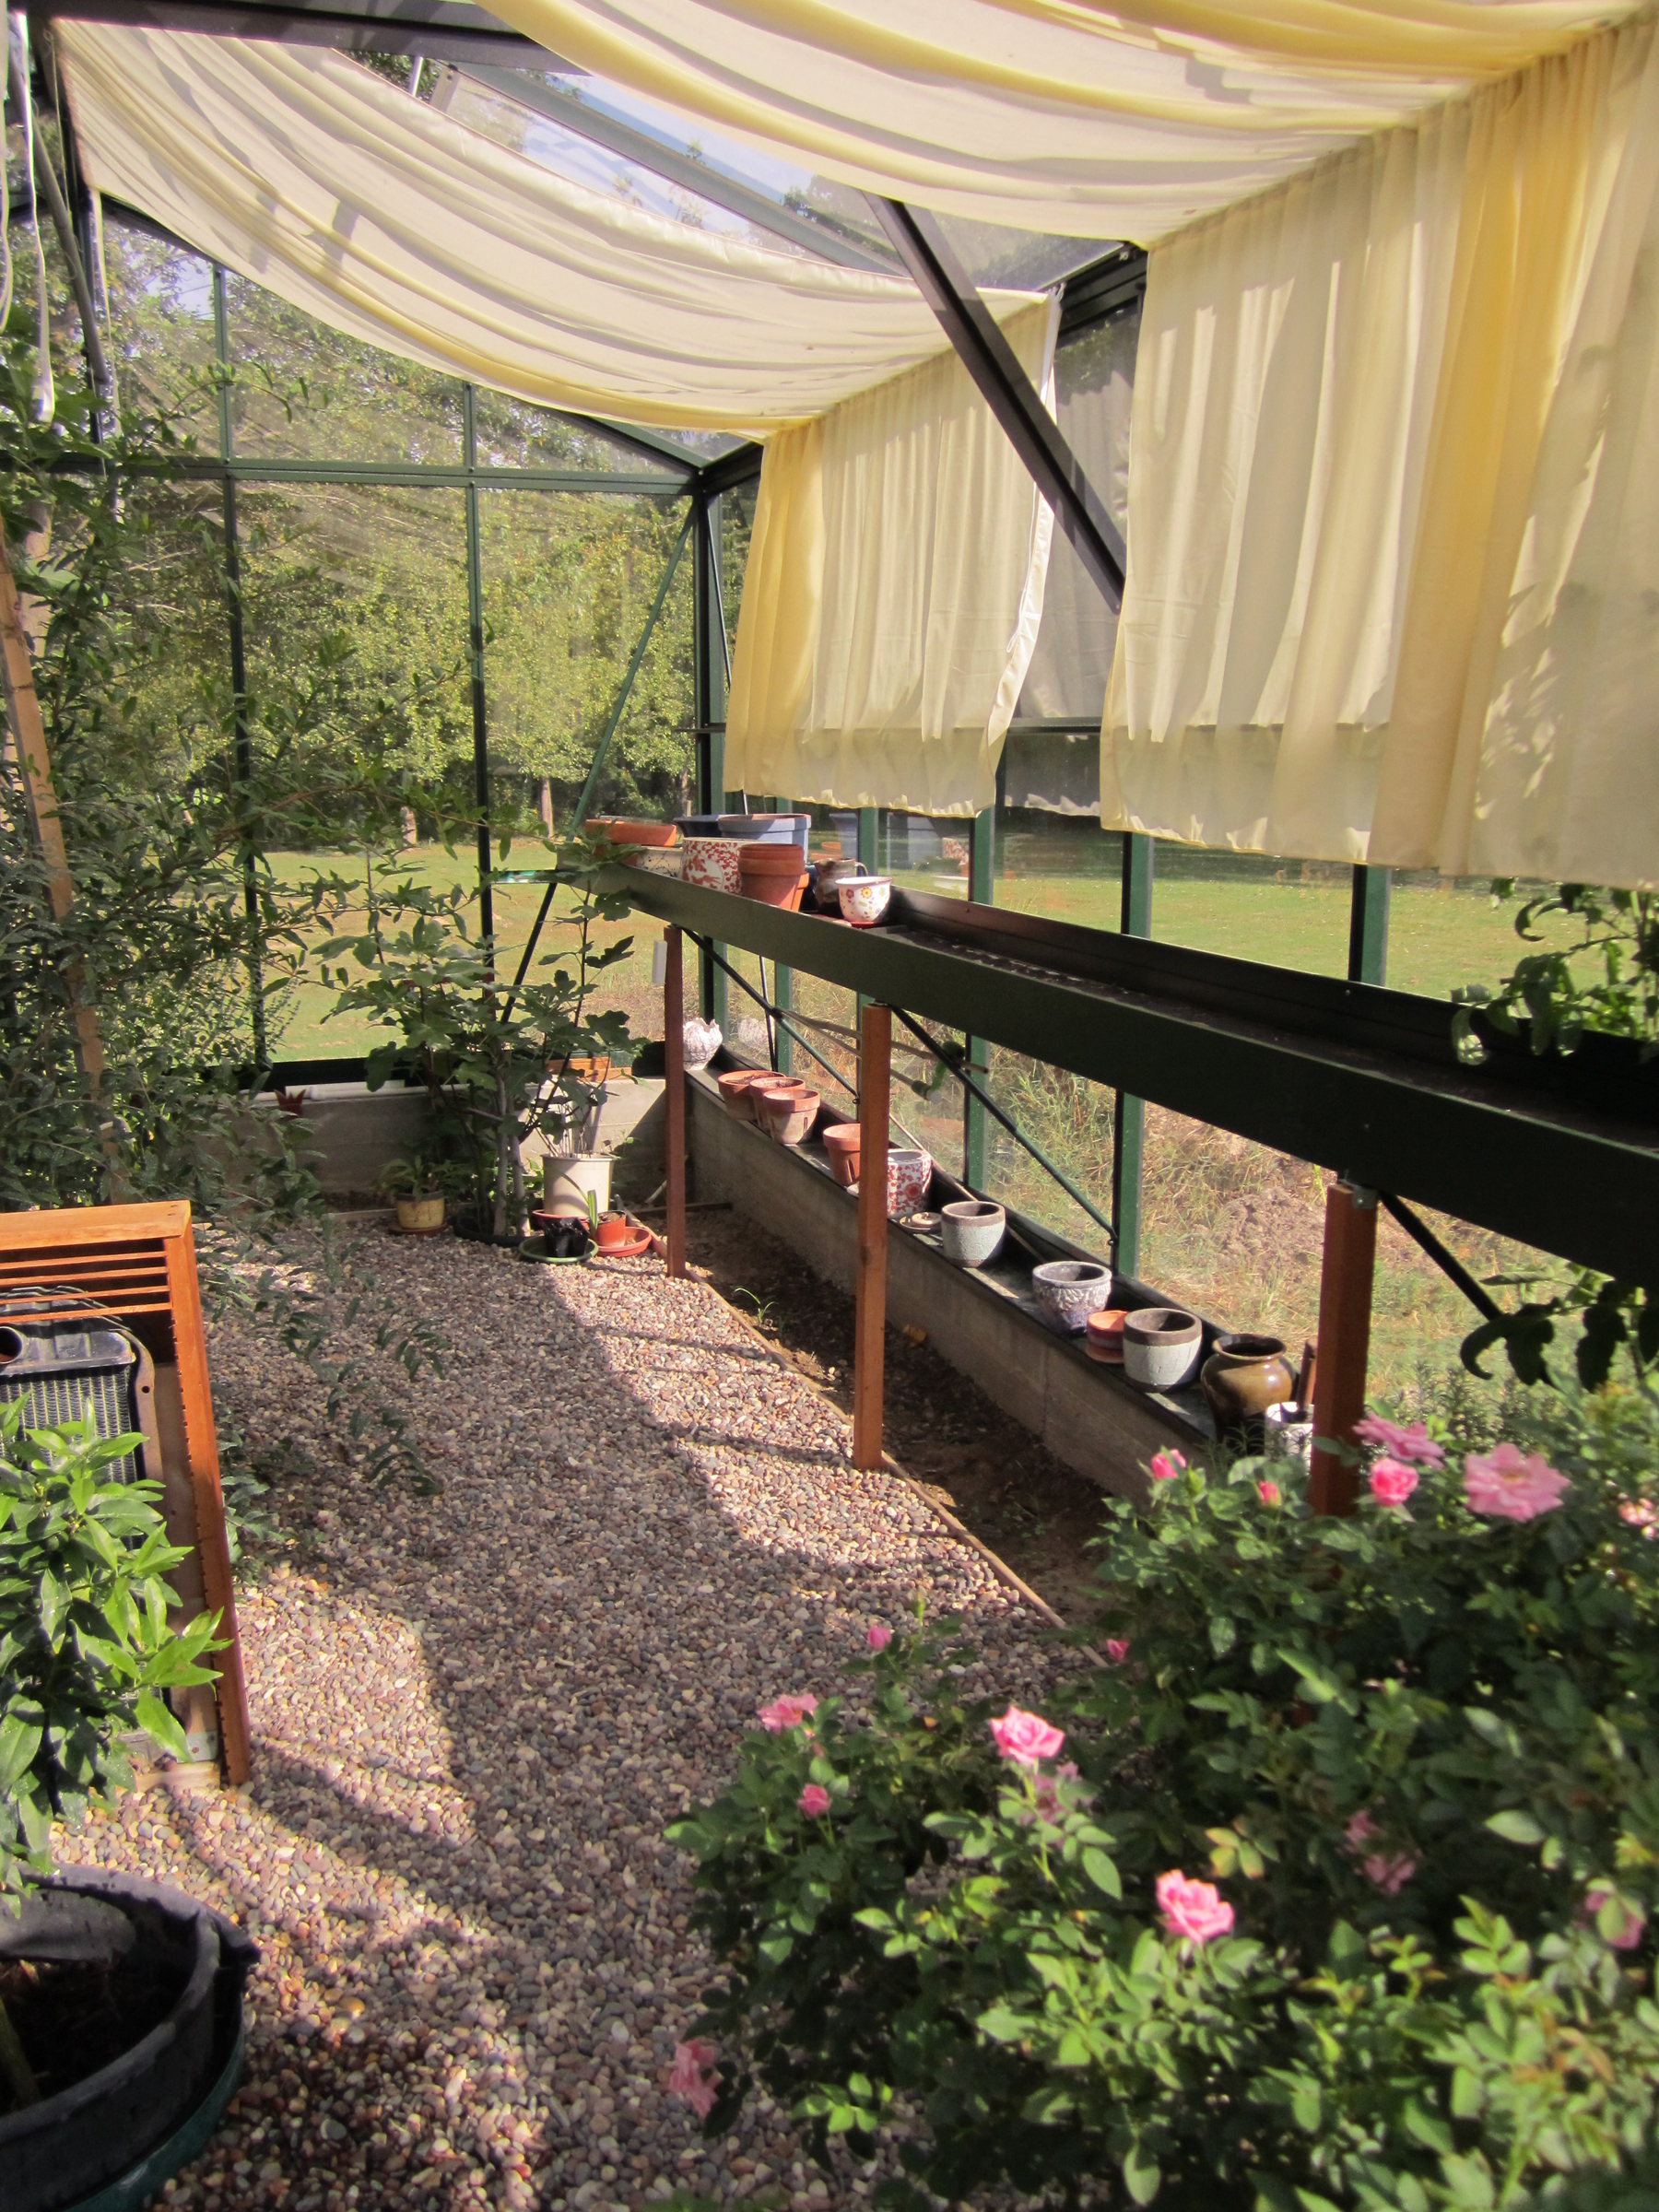 shade netting and shelving in use